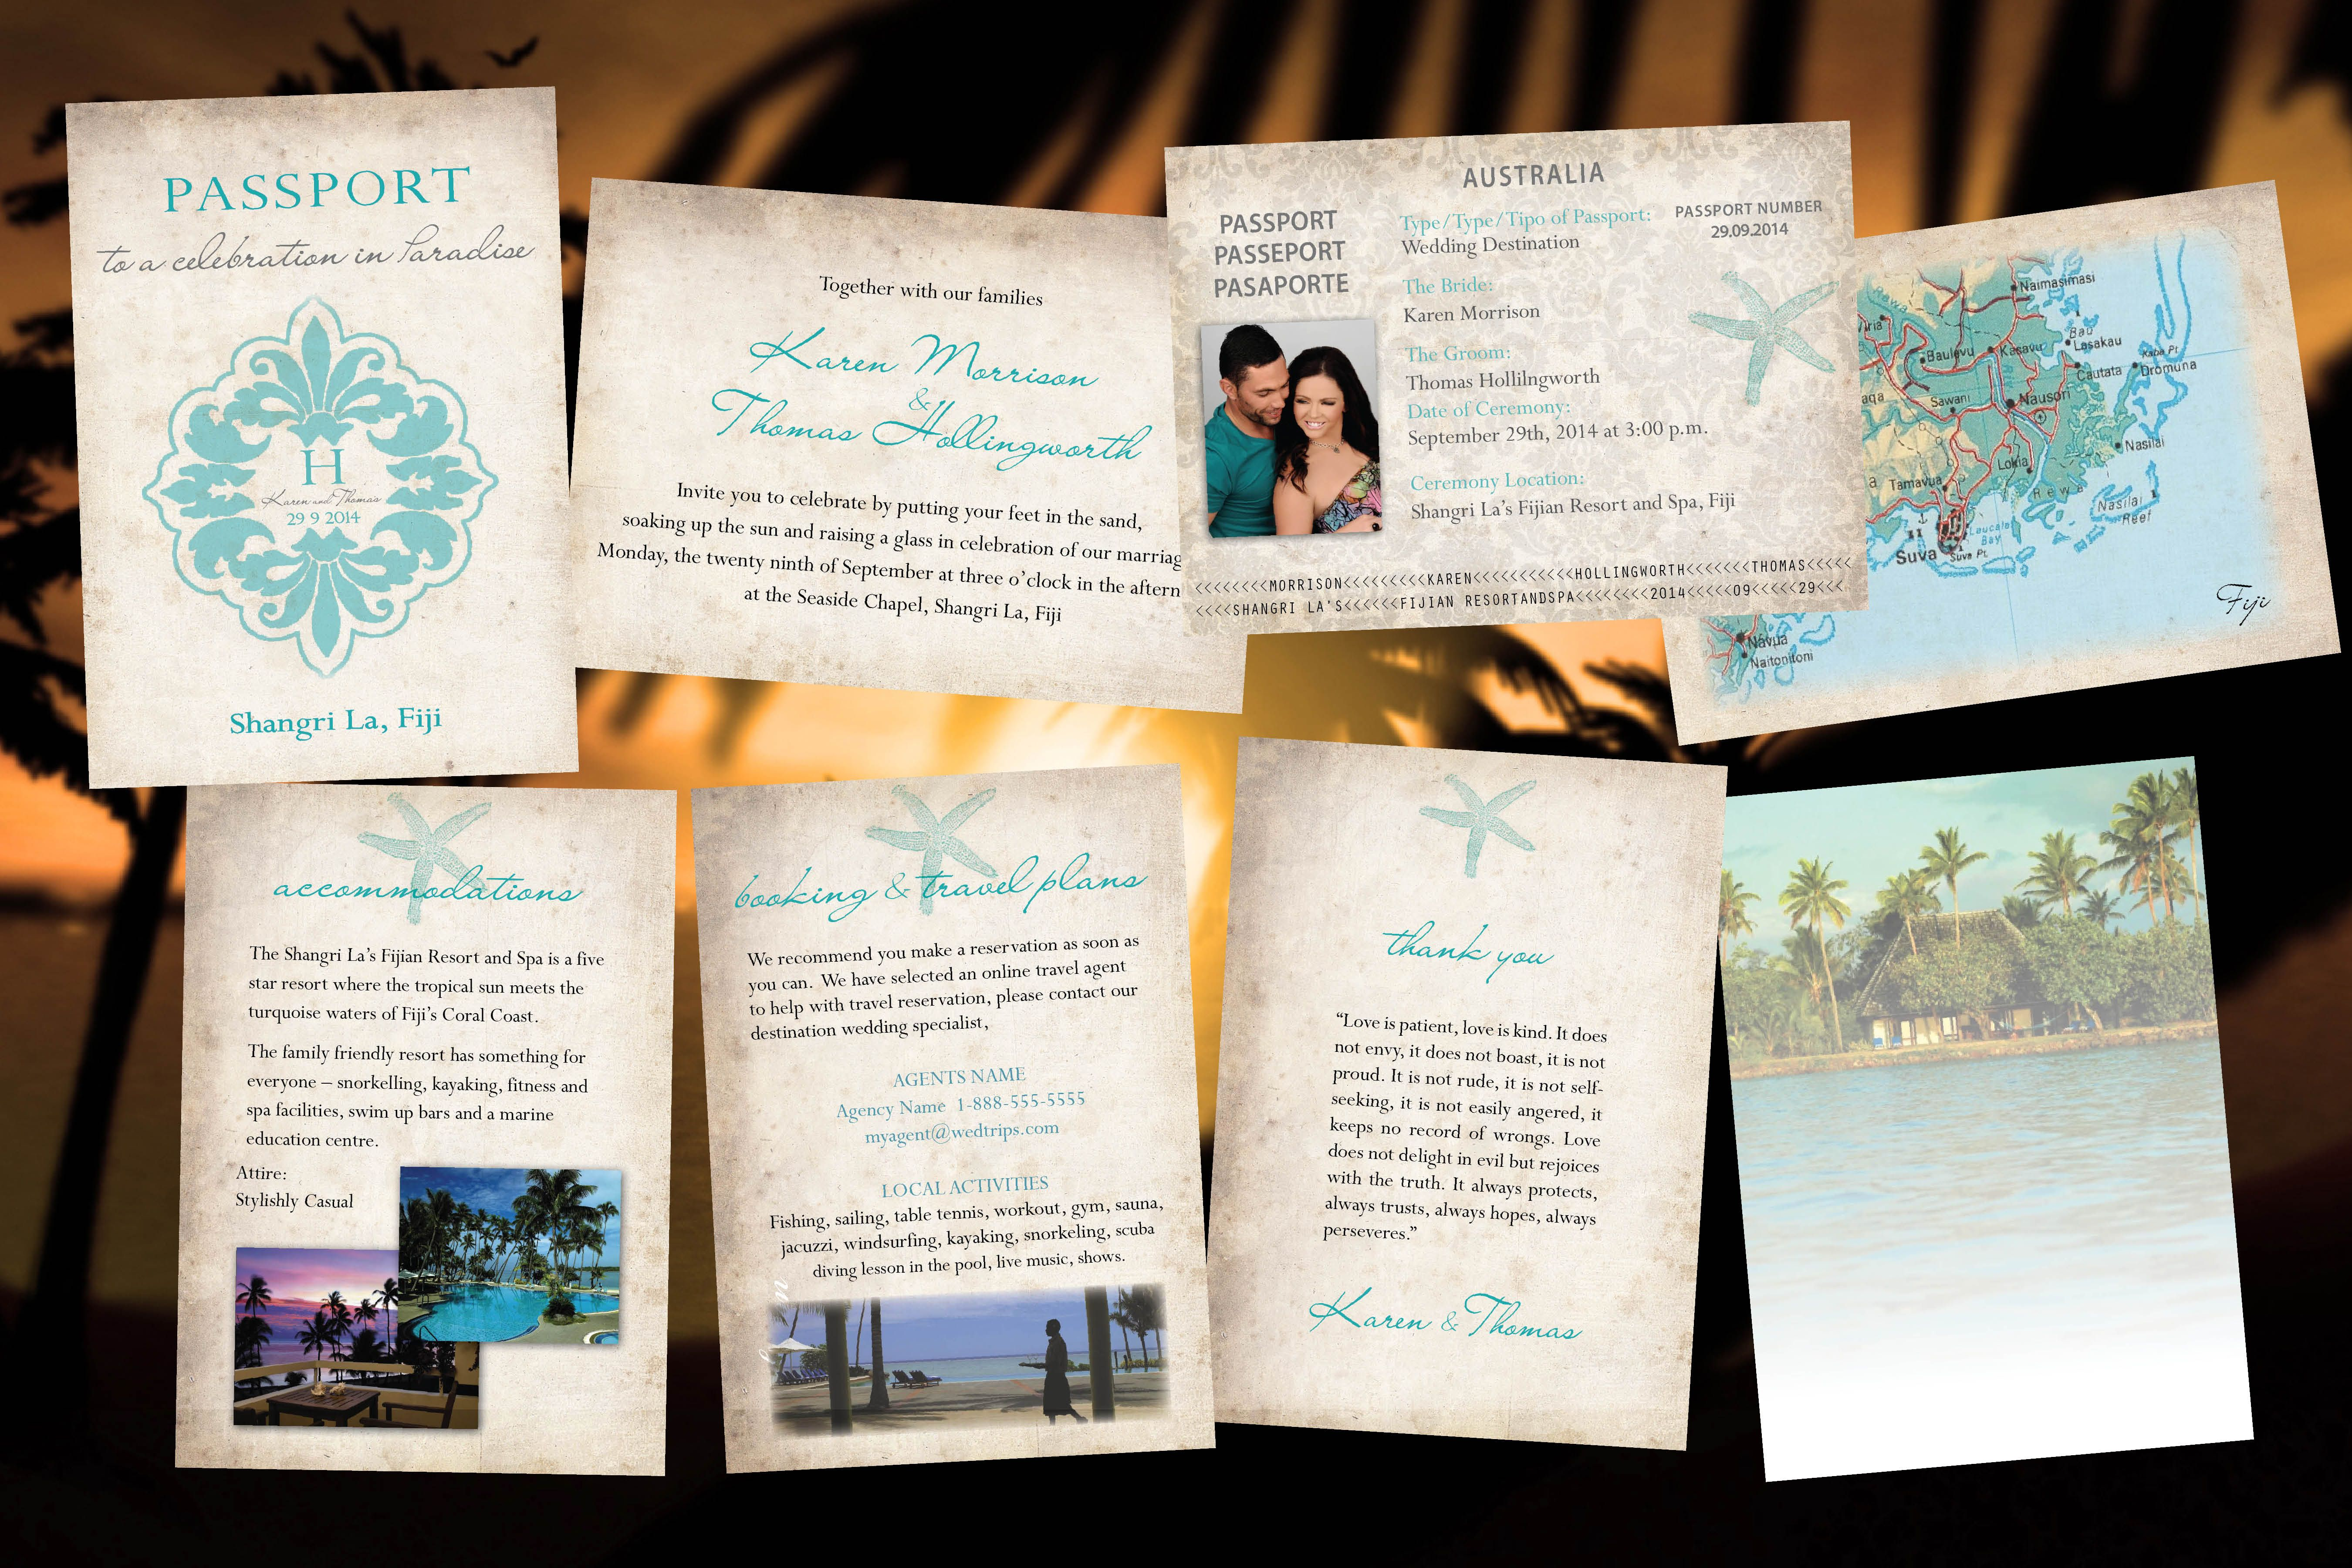 Passport wedding invitations paradise destination wedding passport wedding invitations paradise destination wedding fiji bali mexico cabo dominican teal starfish rustic natural paper gumiabroncs Image collections